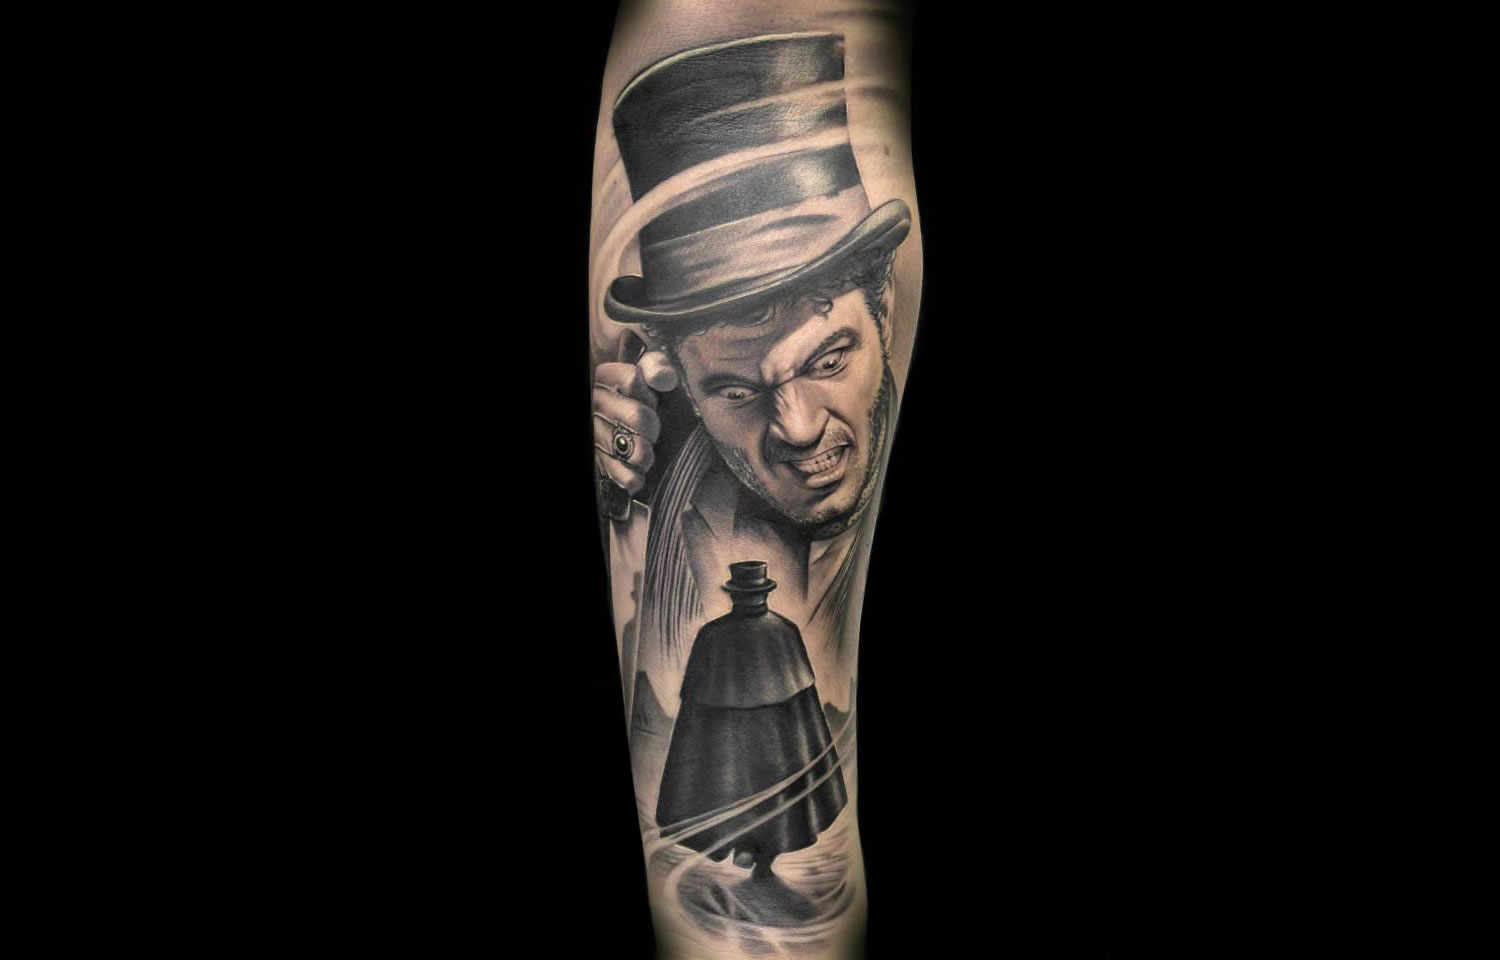 sherlock holmes style image with man wearing a top hat